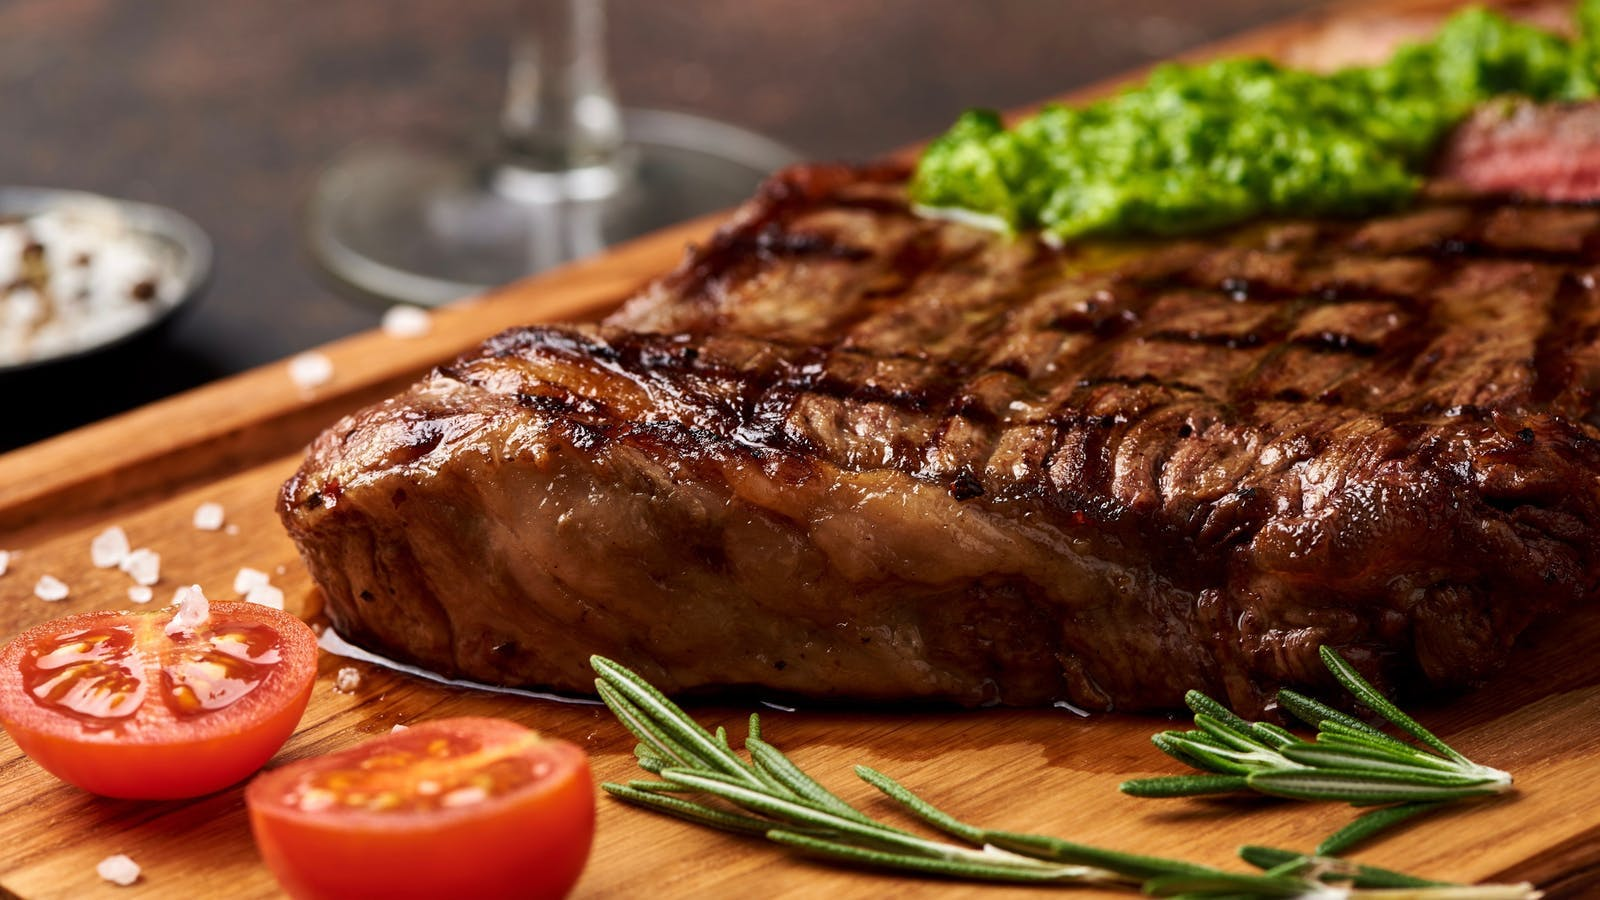 Cut-red-meat-eating-by-80-percent-to-save-the-planet